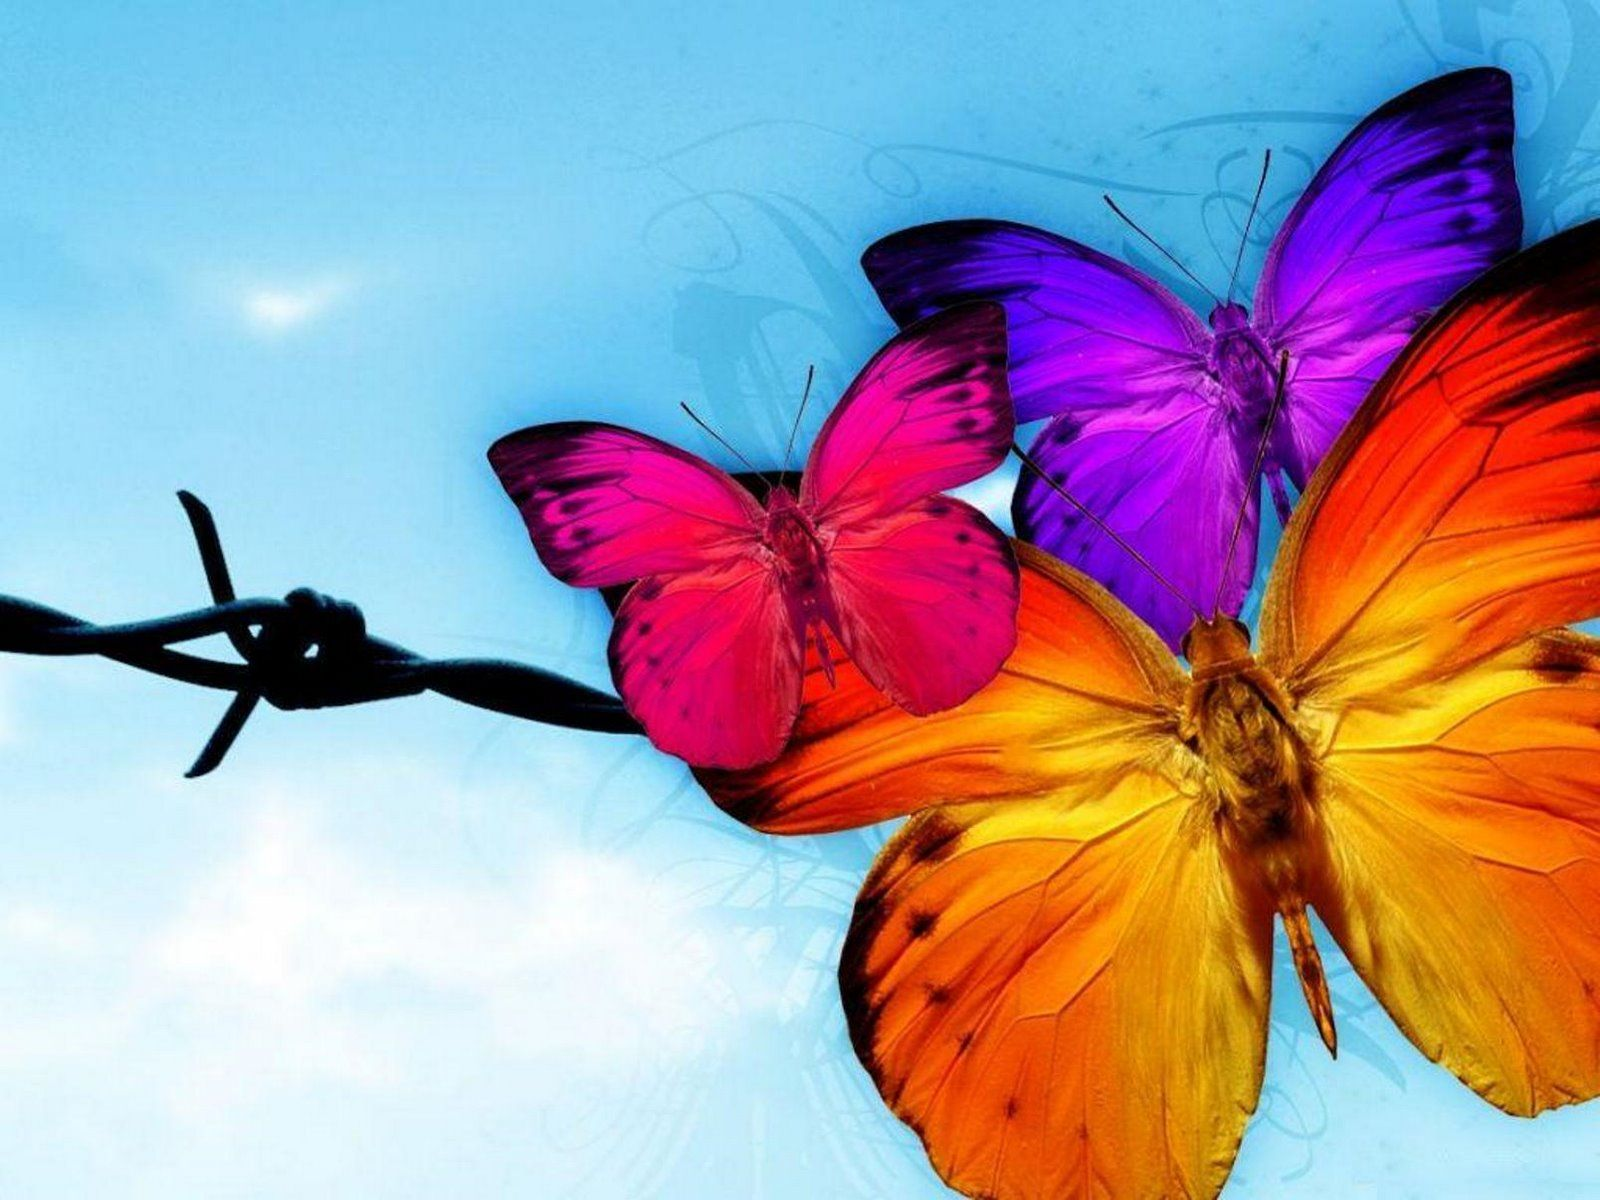 Animated Butterfly Wallpapers - Top Free Animated Butterfly